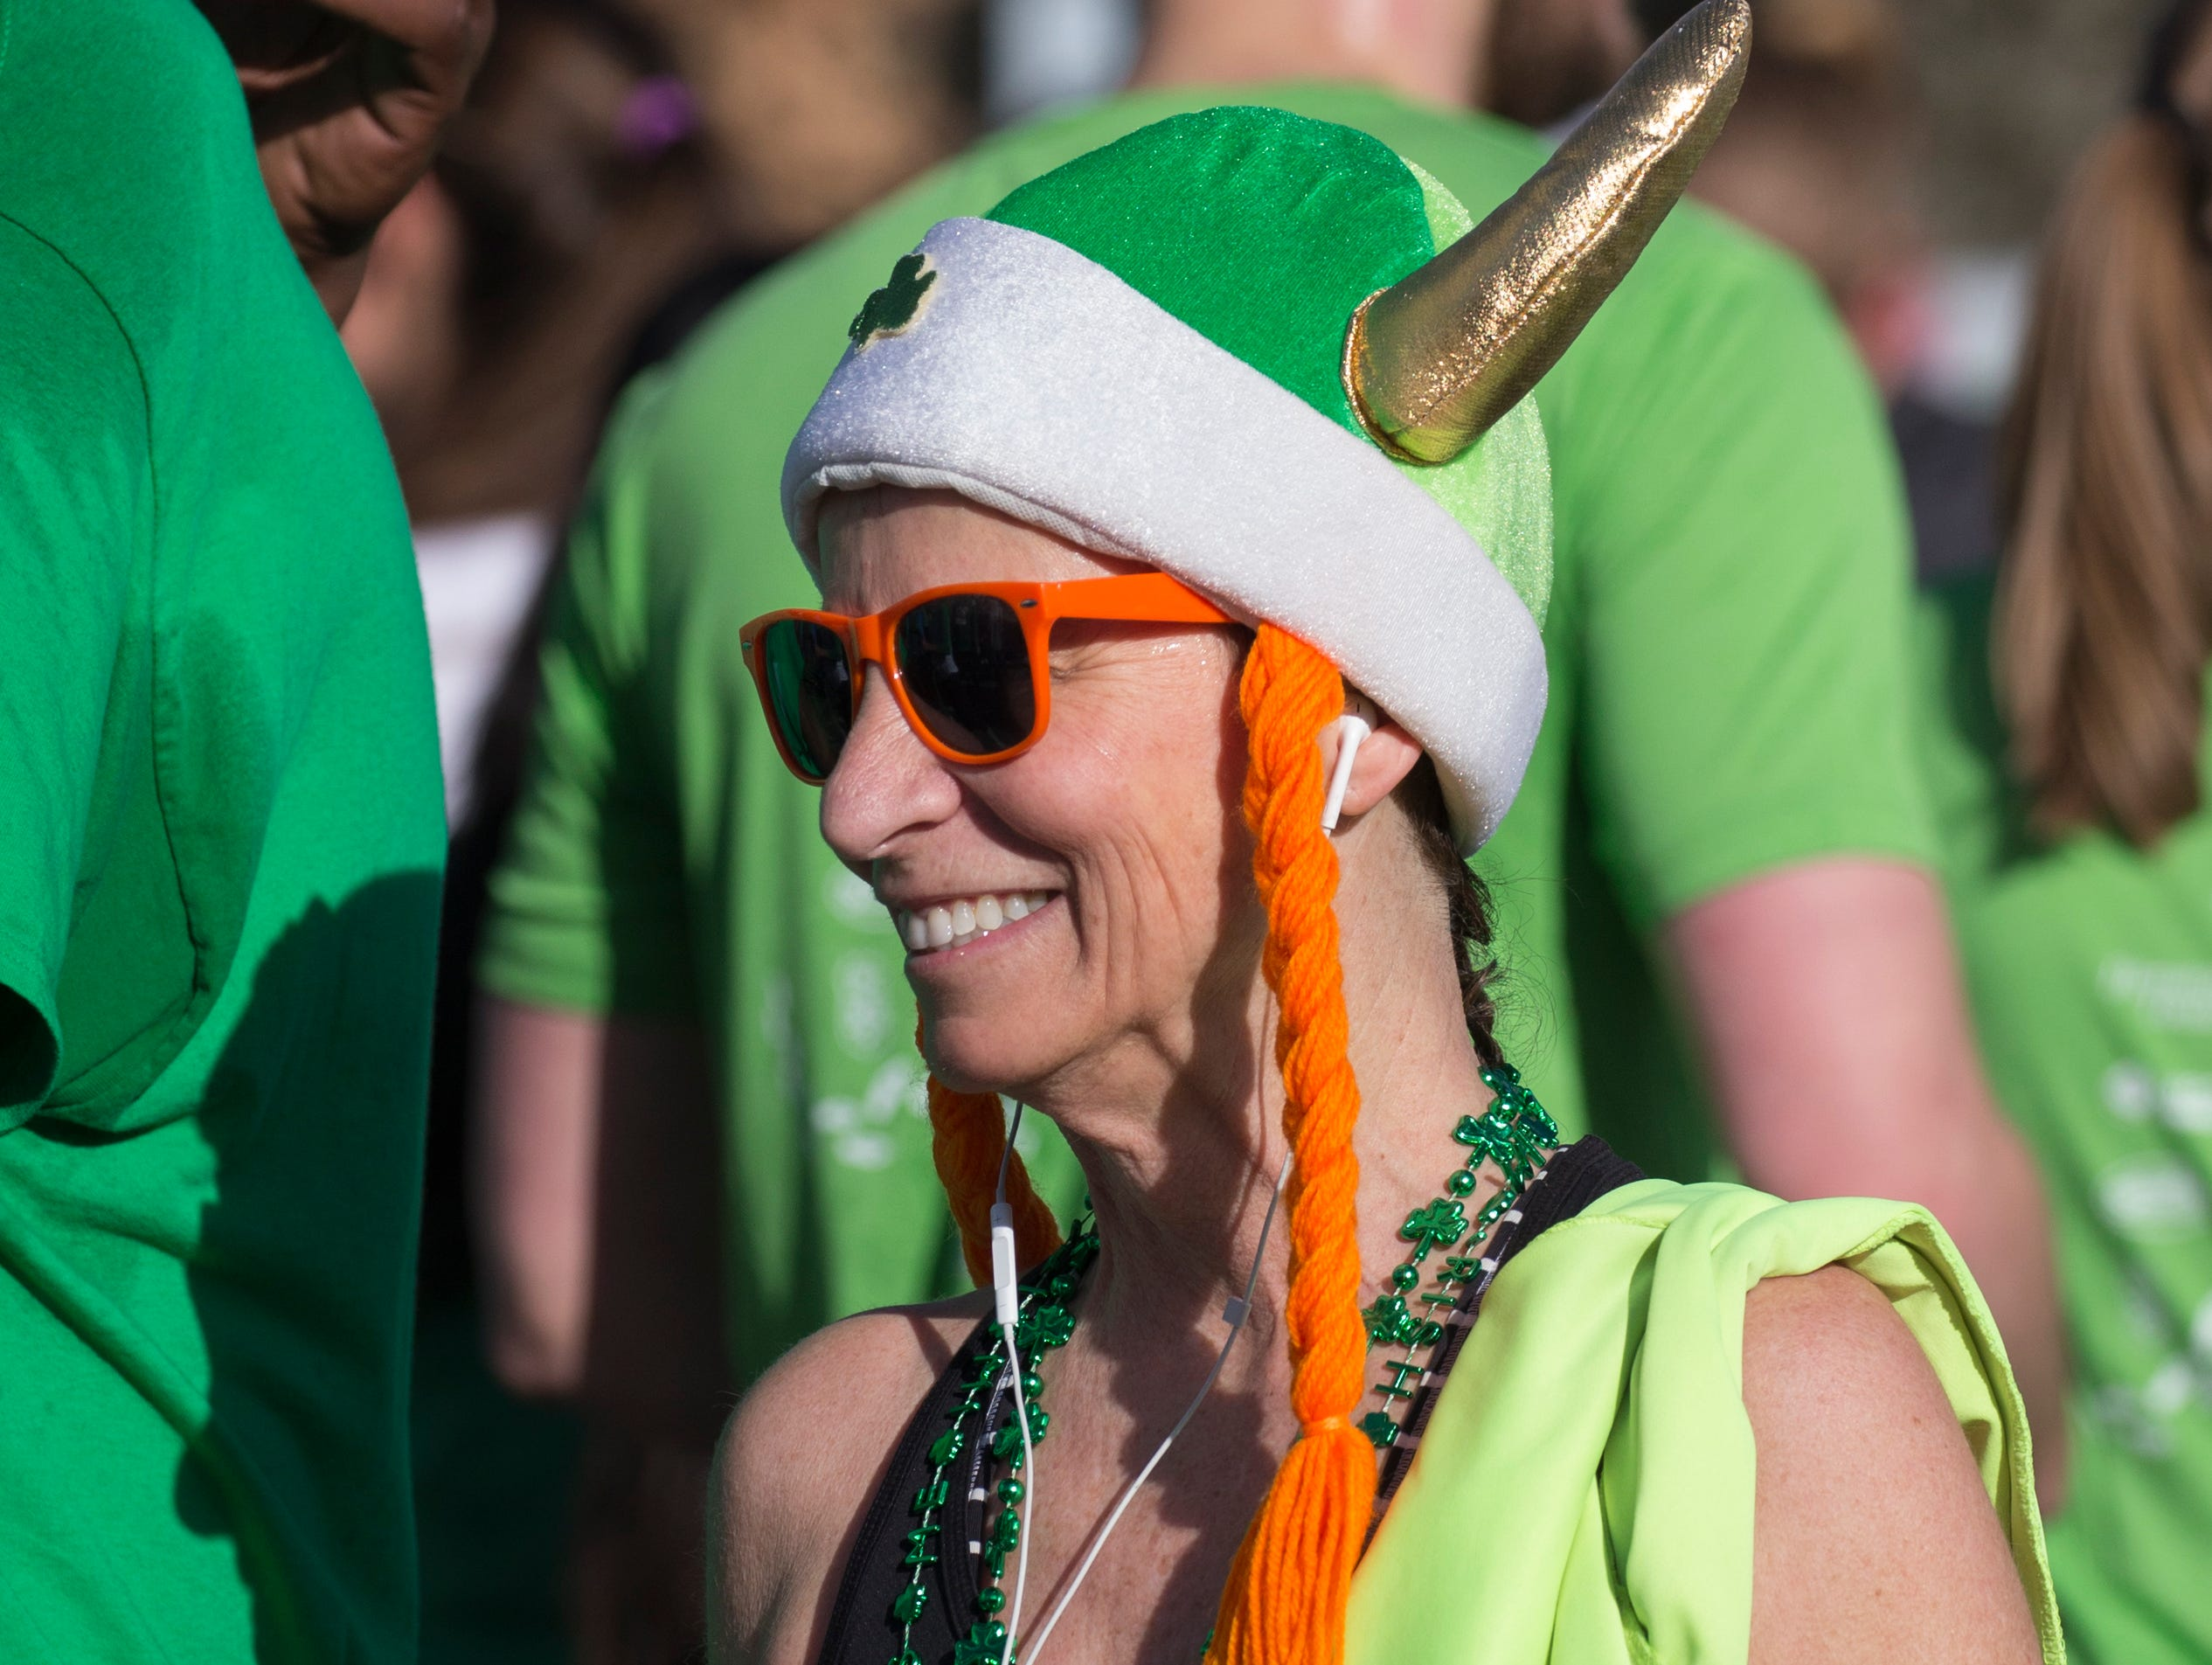 A photograph taken during the 7th annual Leprechaun Race in downtown Reno, Nevada on Sunday, March 17, 2019.